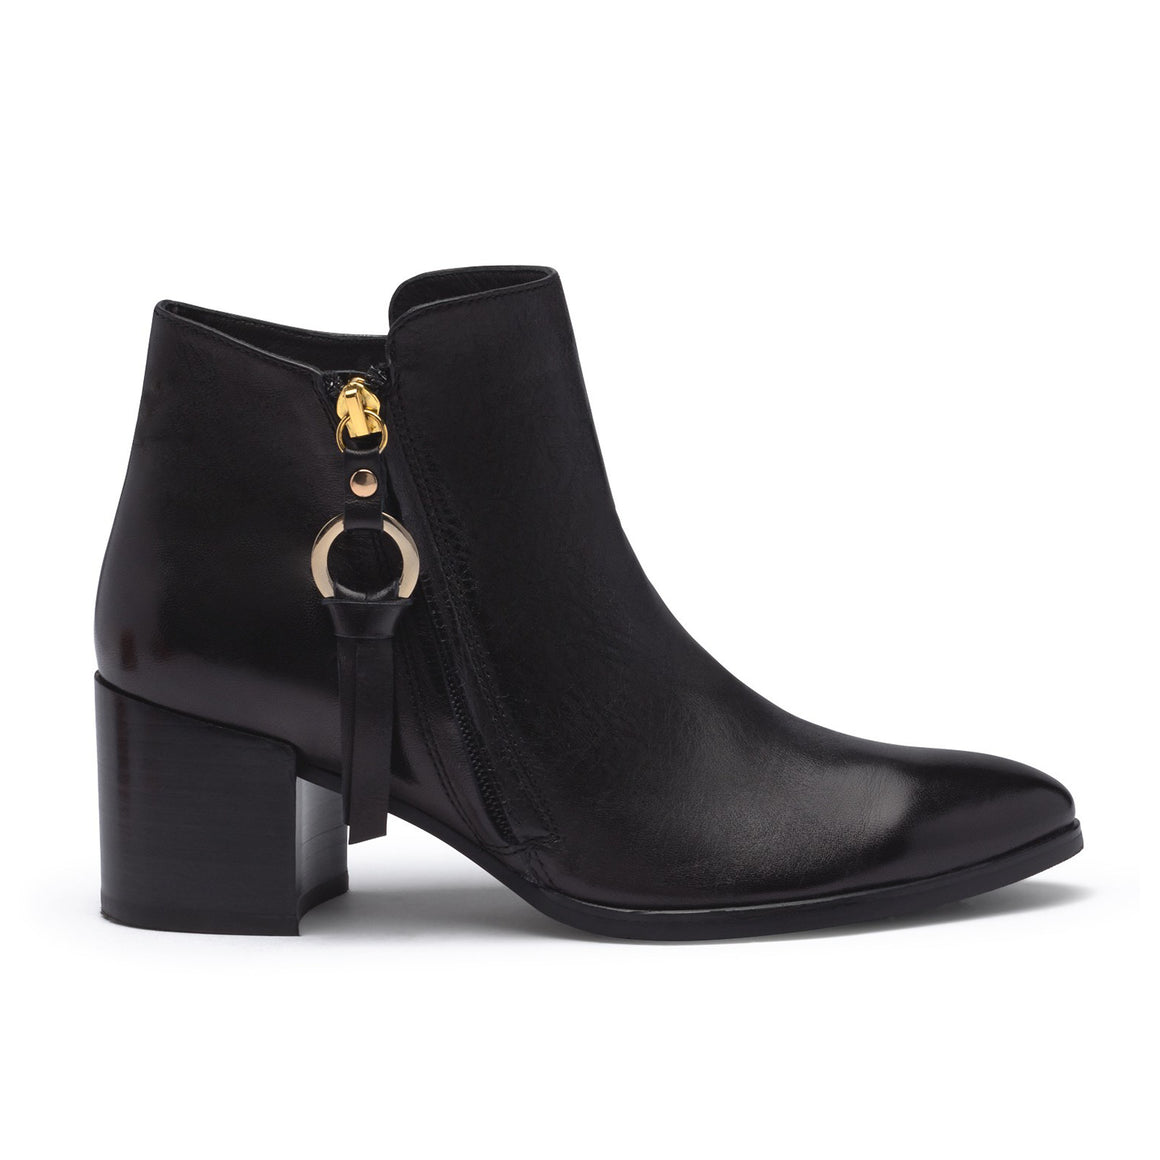 Taylor 01 for Women in Black